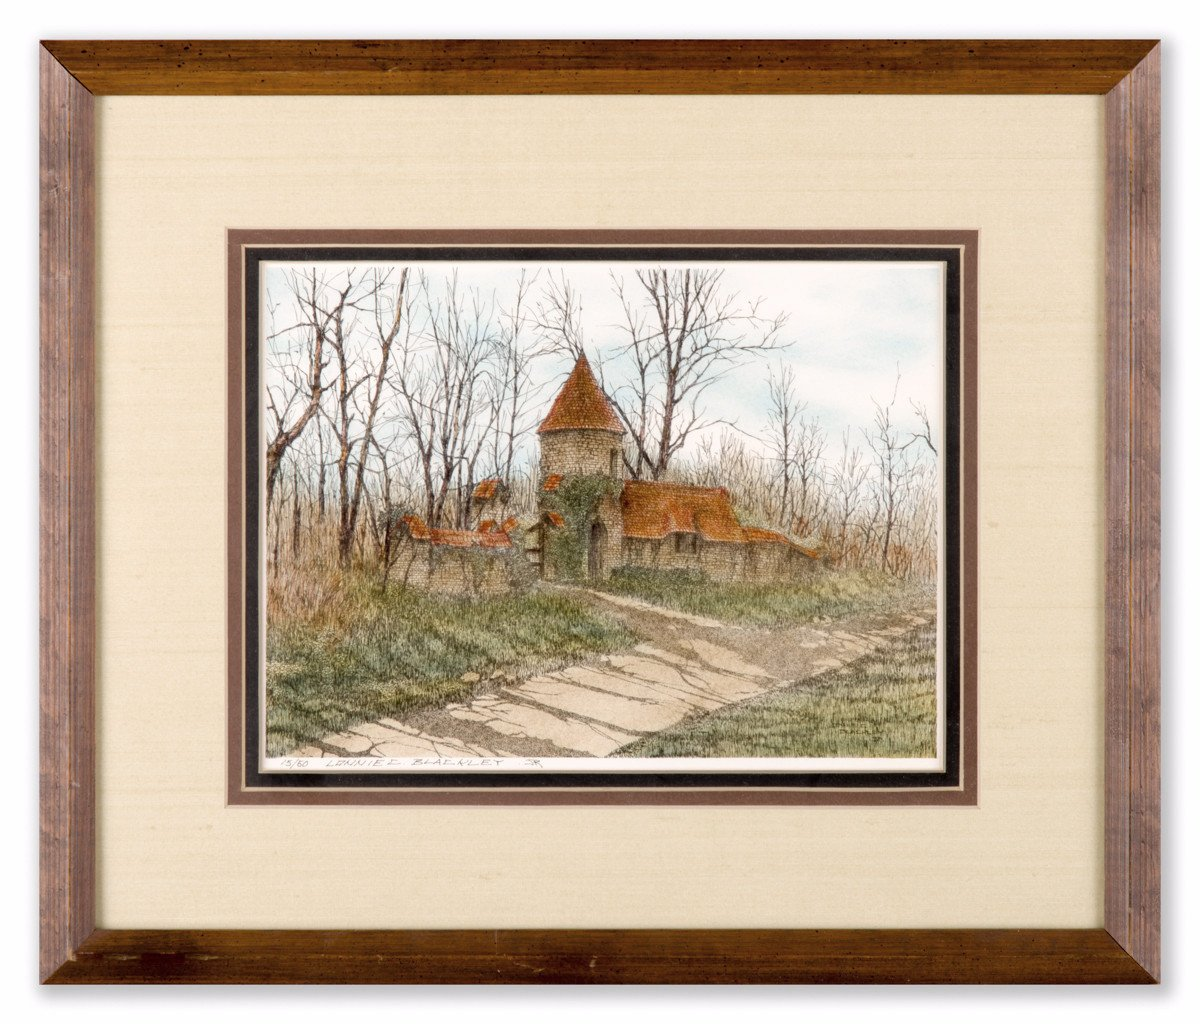 Castle in the Woods - Lonnie Blackley Jr. (Signed Lithograph) - Framed Art